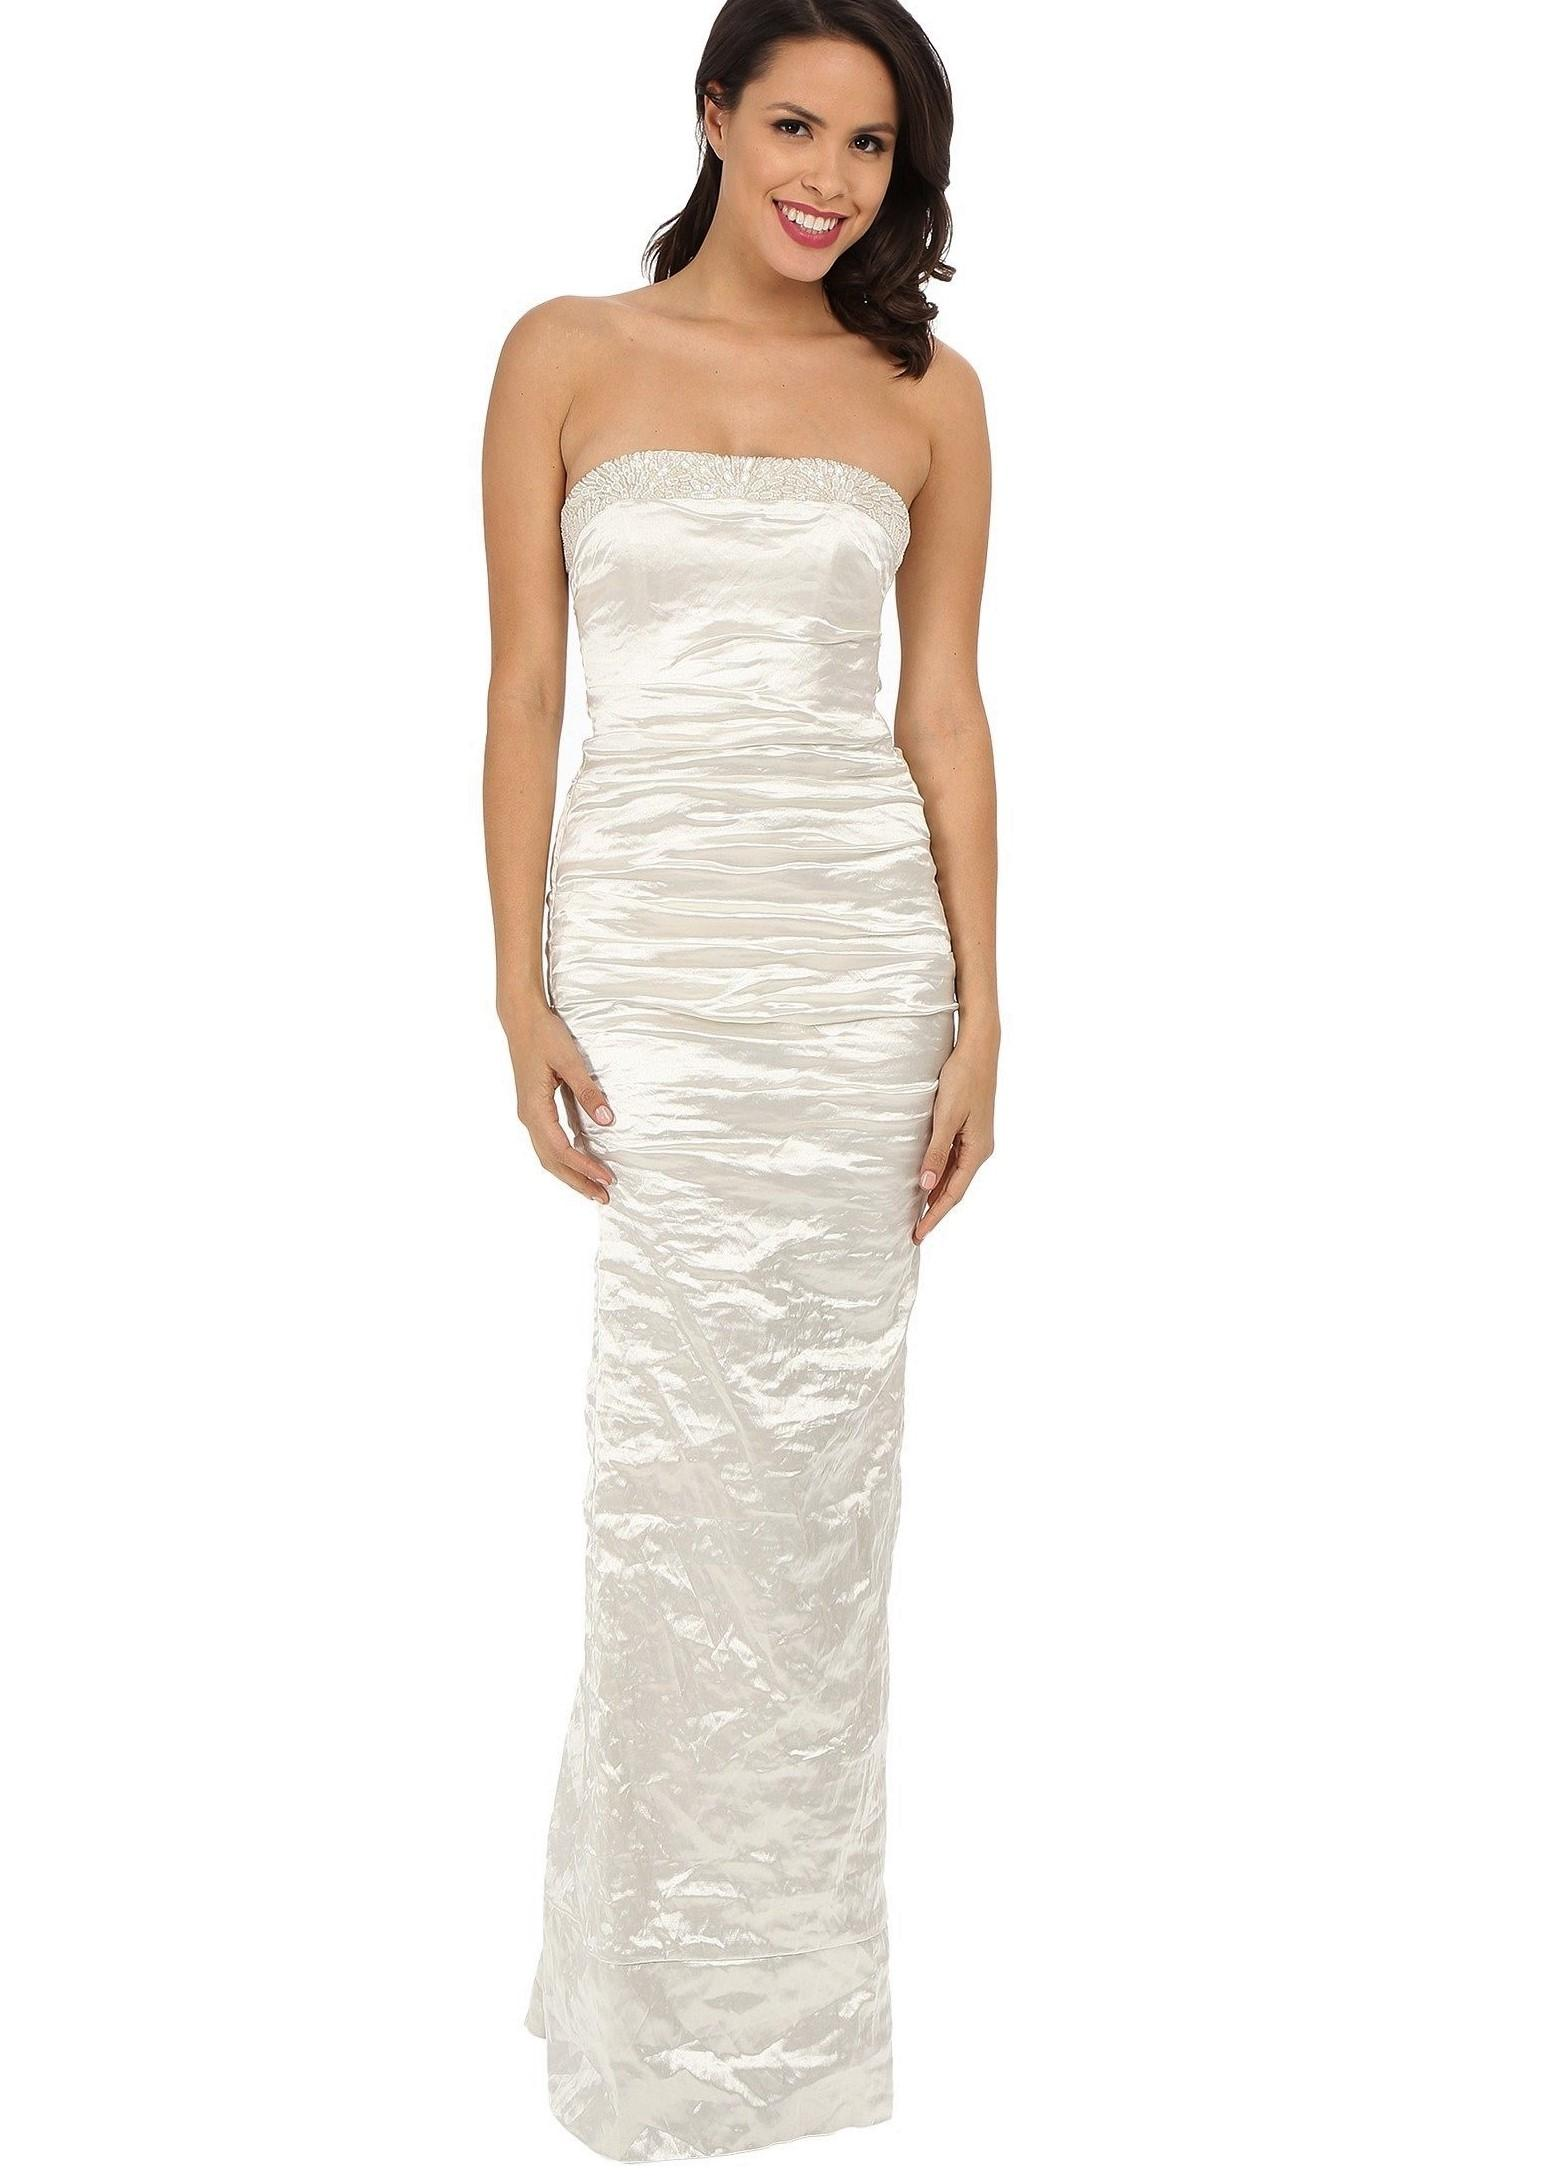 Beige colored strapless wedding dresses